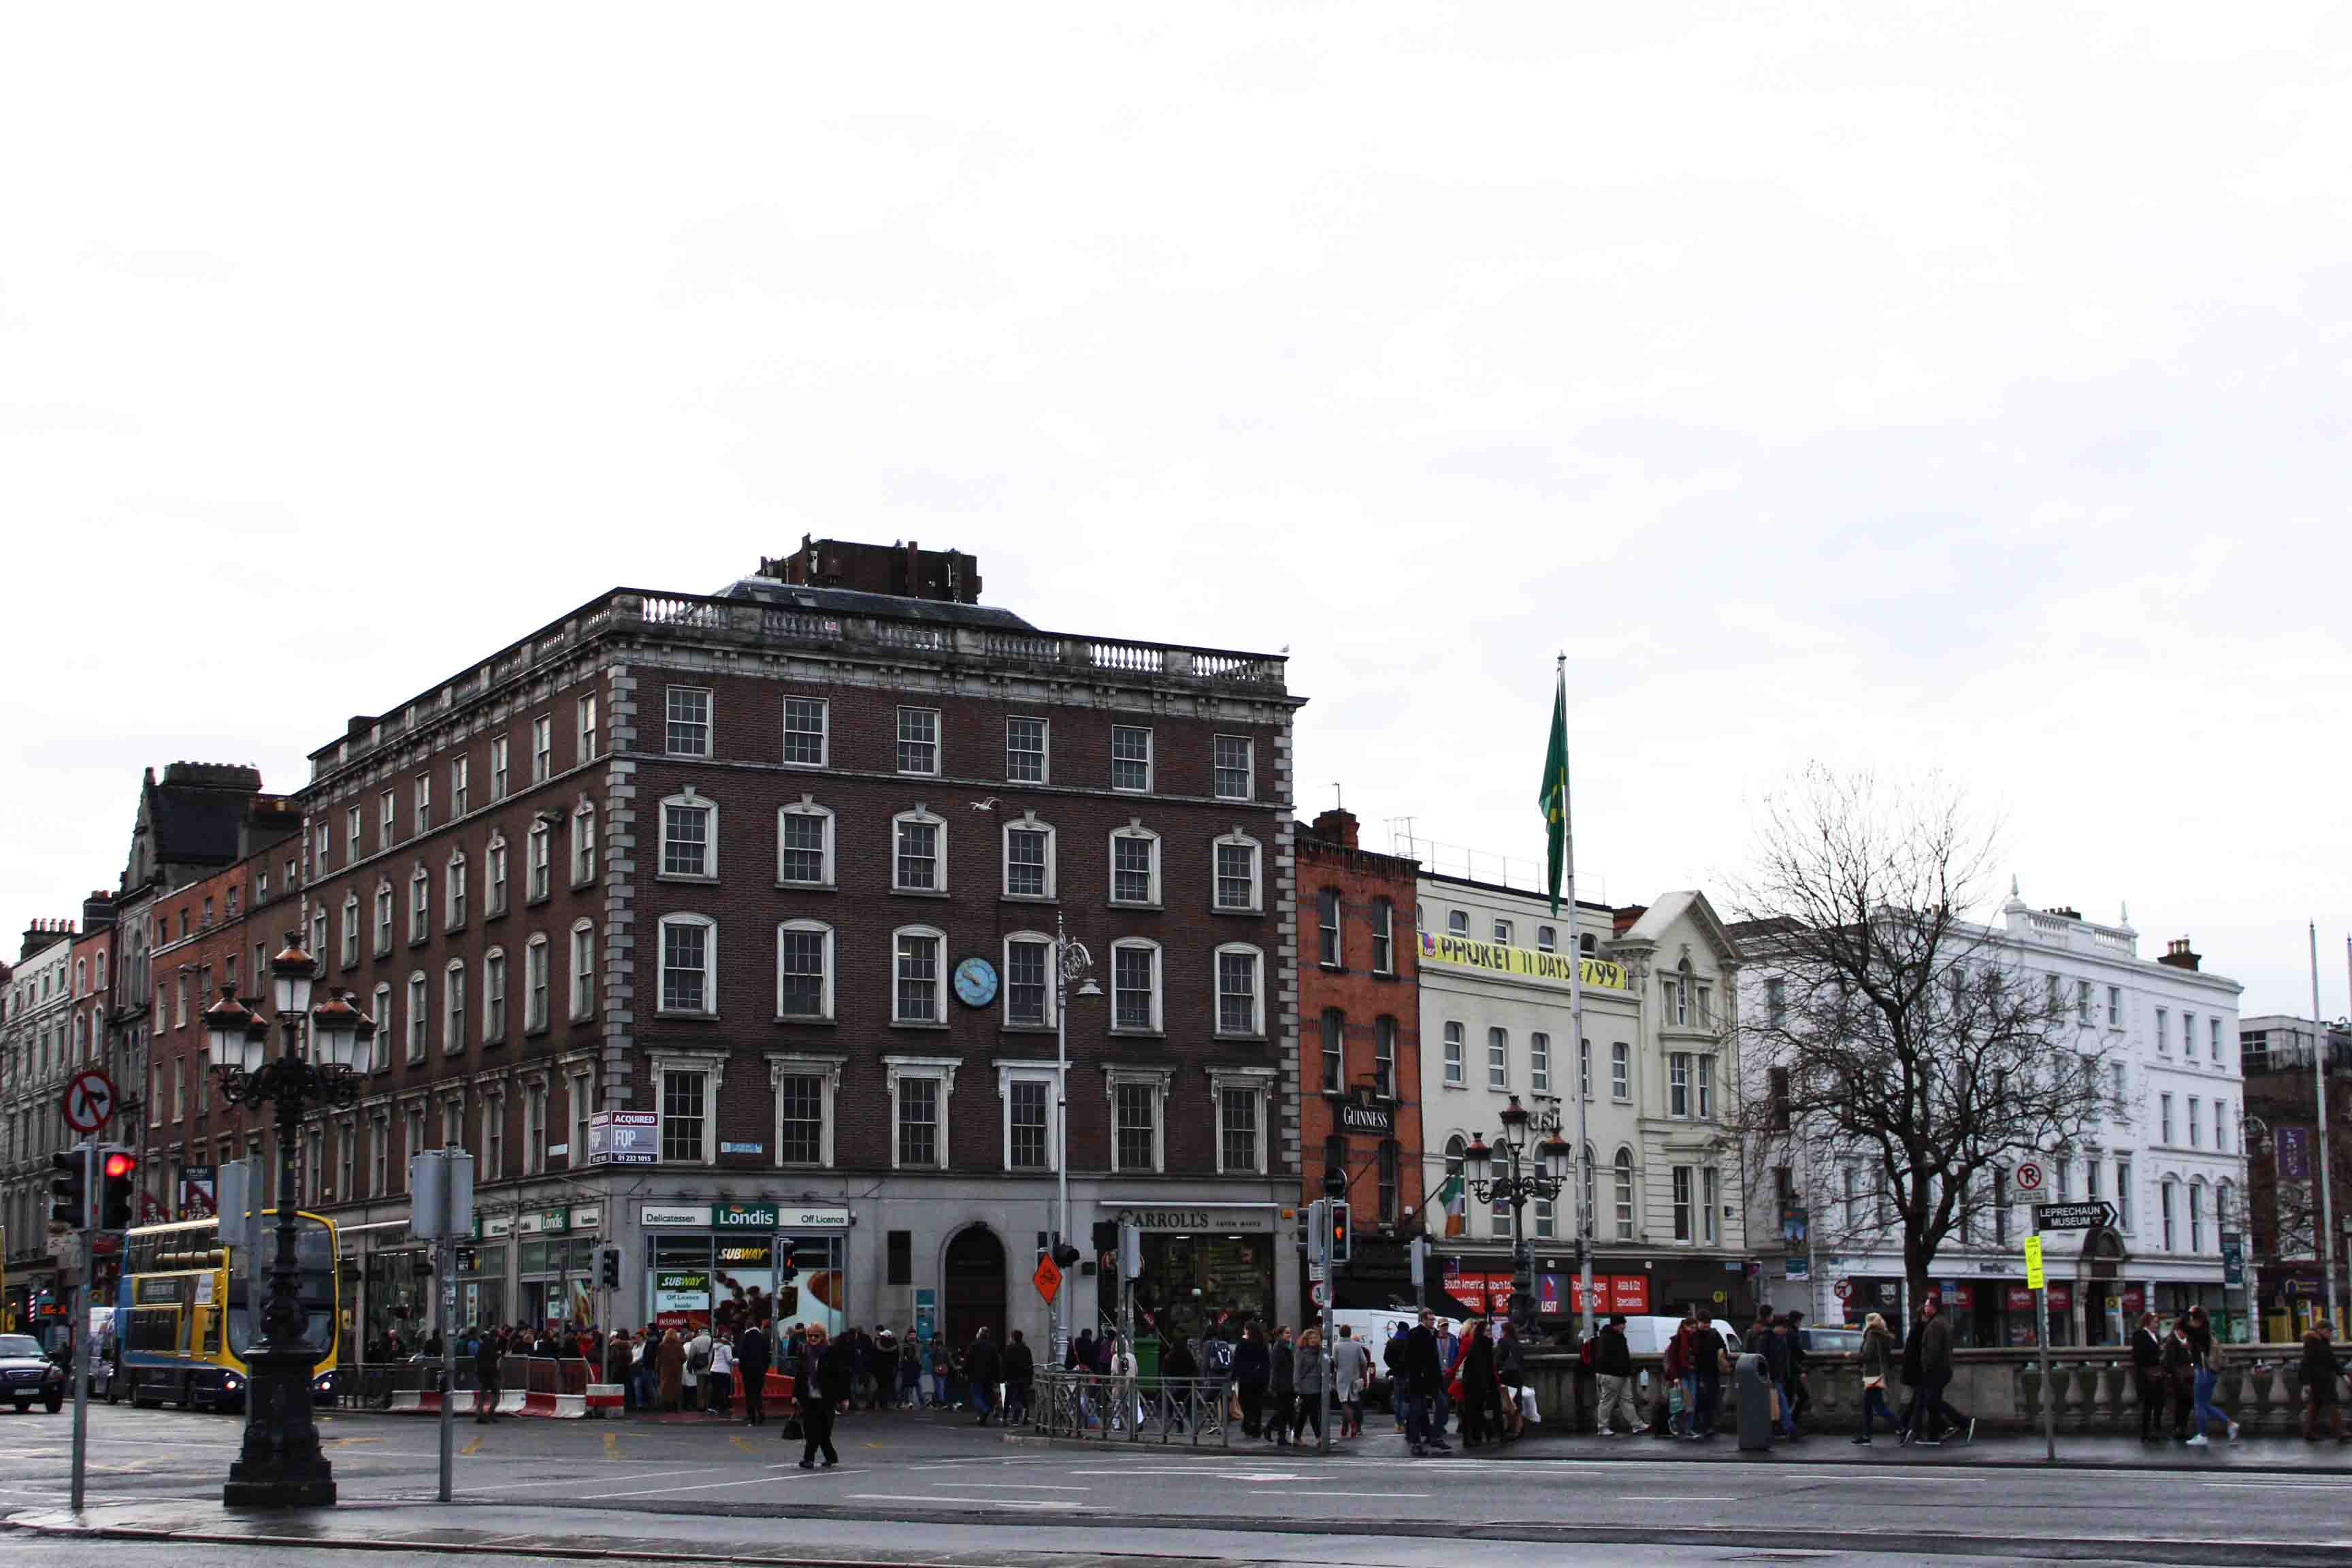 Dublin city center